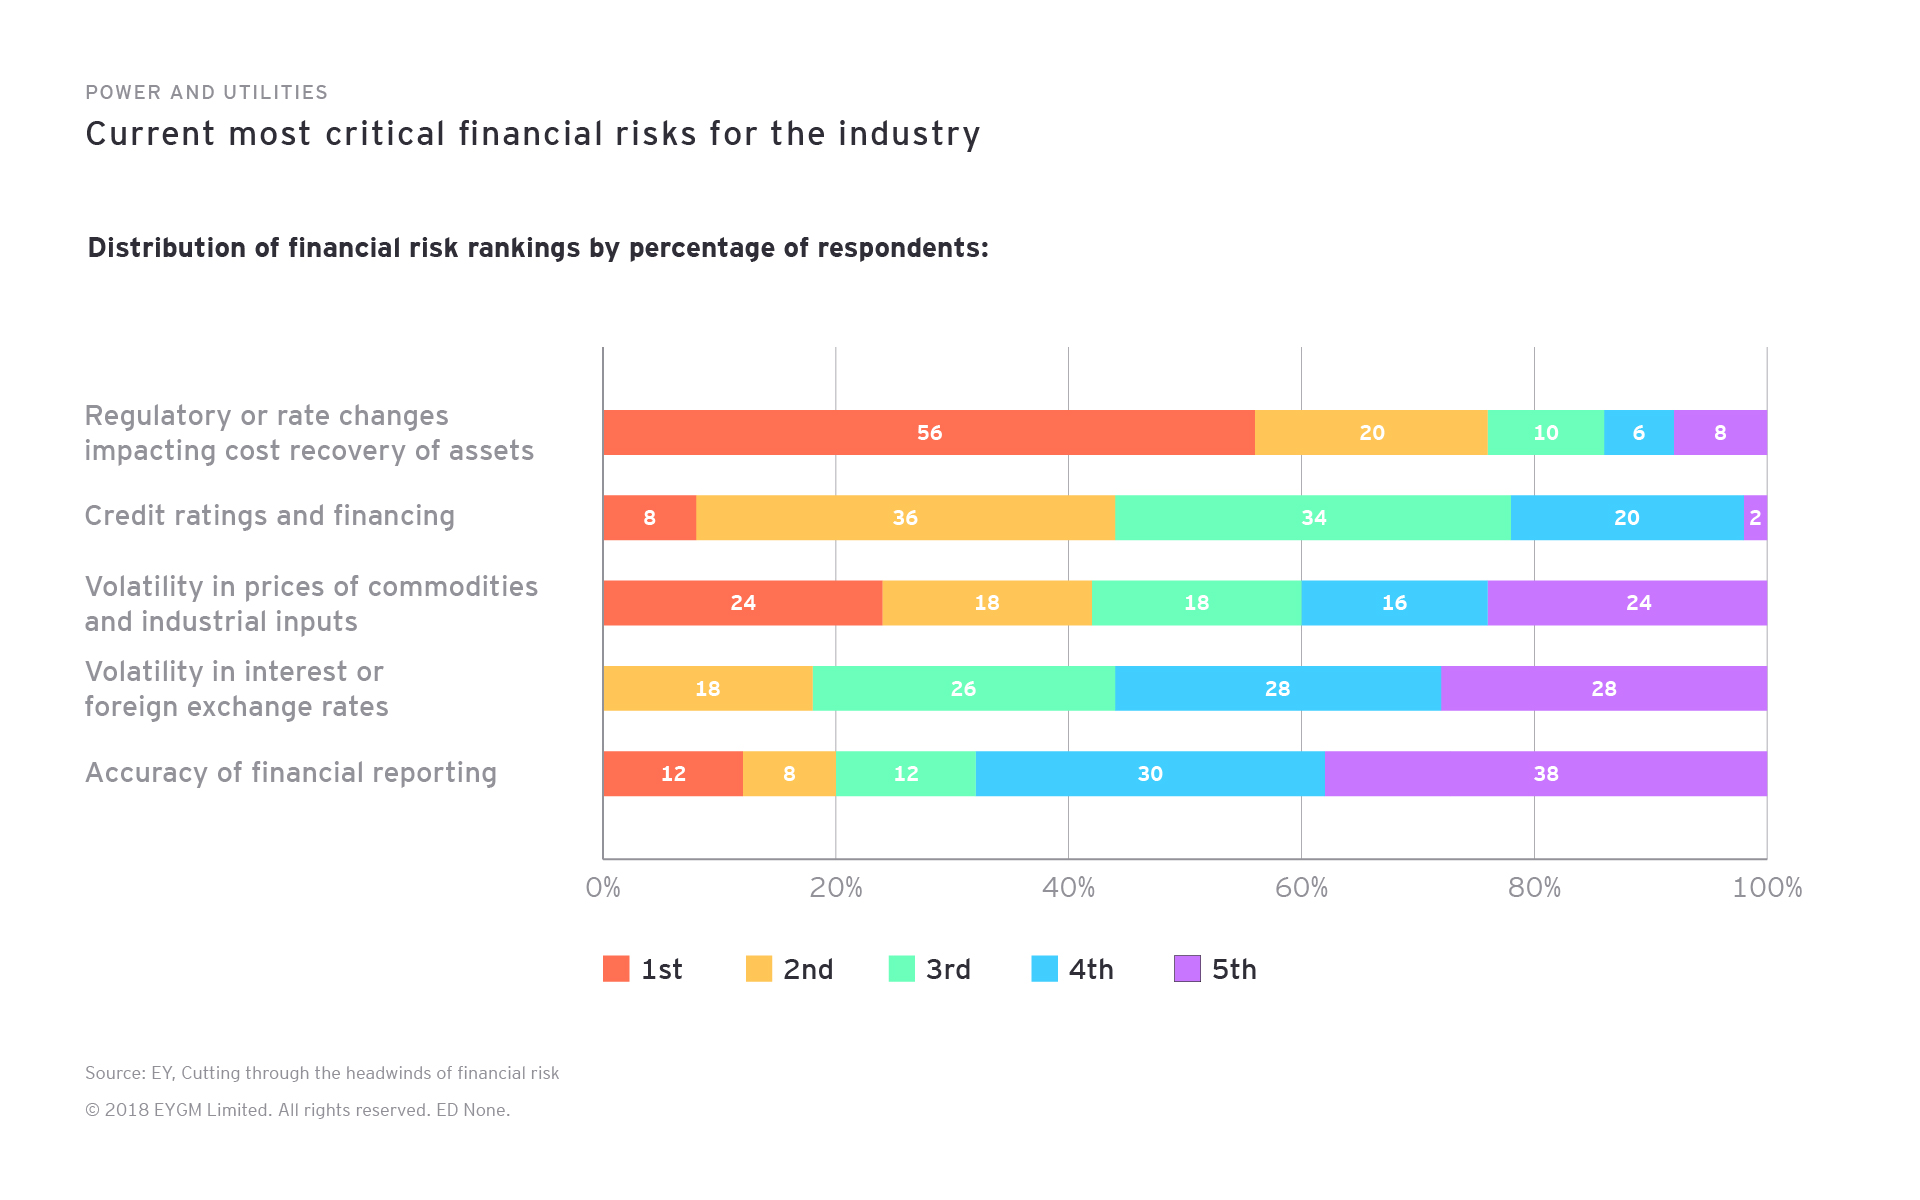 Power and Utilities. Current most critical financial risks for the industry